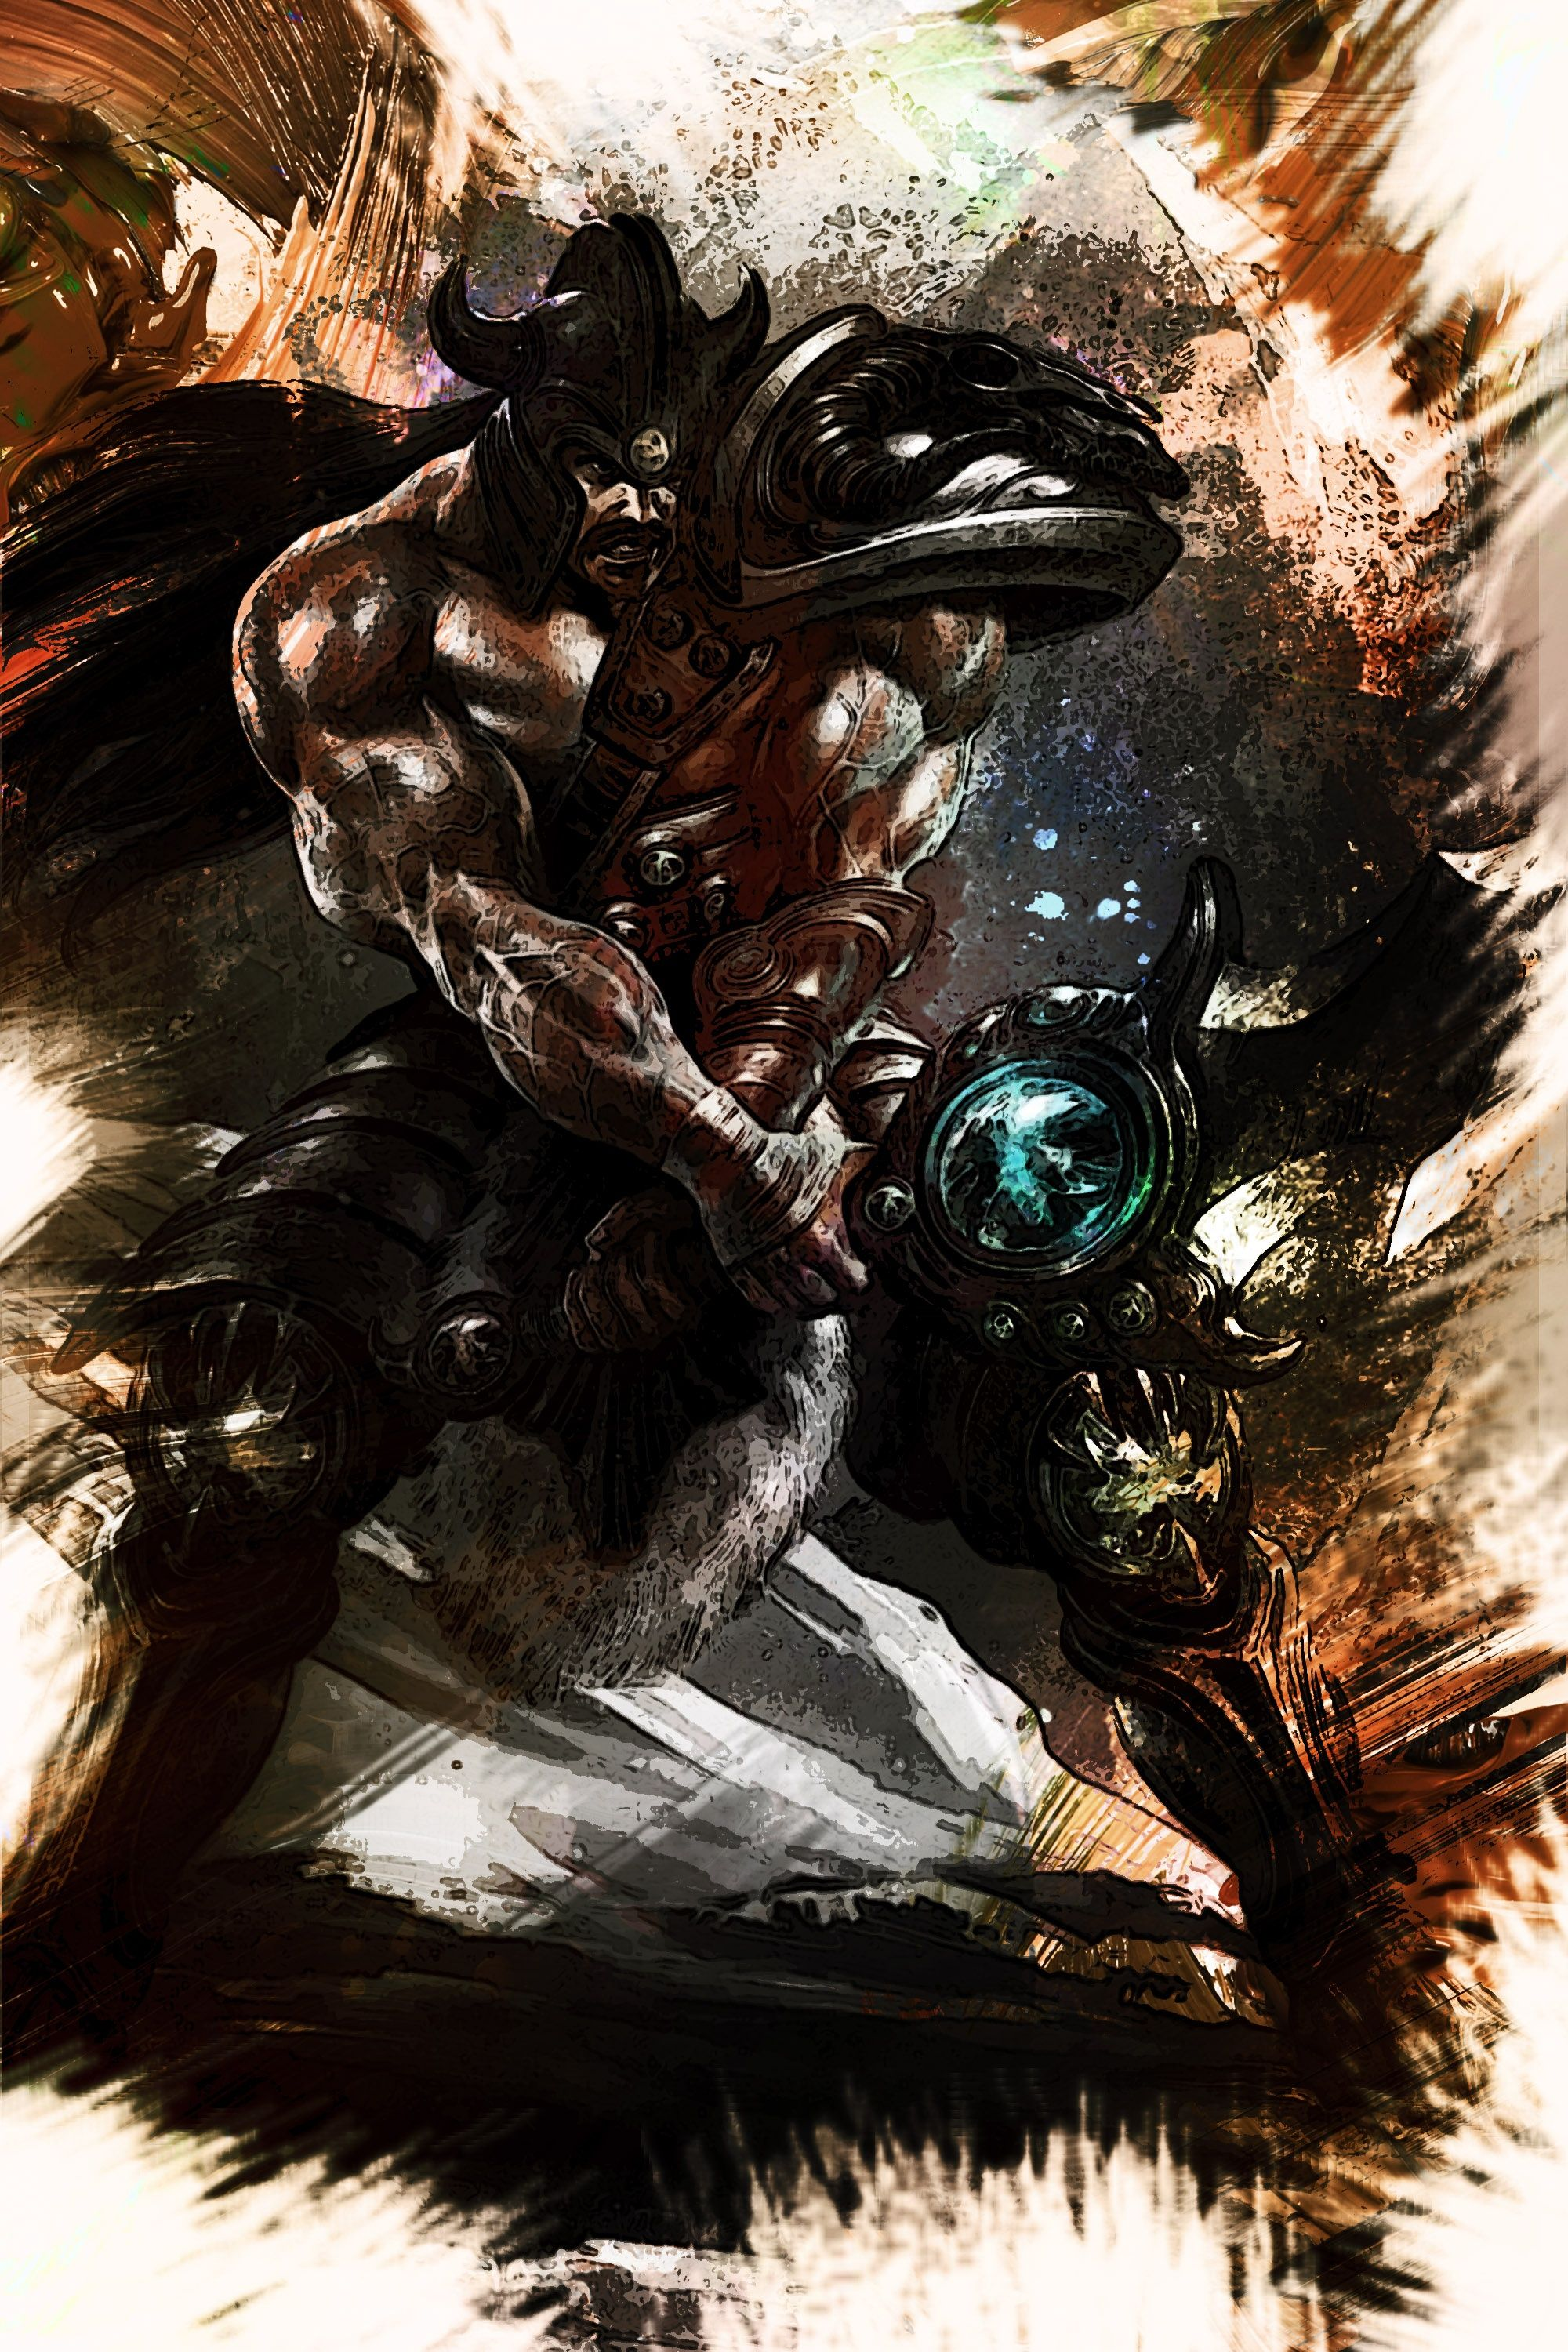 League of legends tryndamere gaming greetings descriptioncustom artwork of the character from the extraordinary game kristyandbryce Gallery